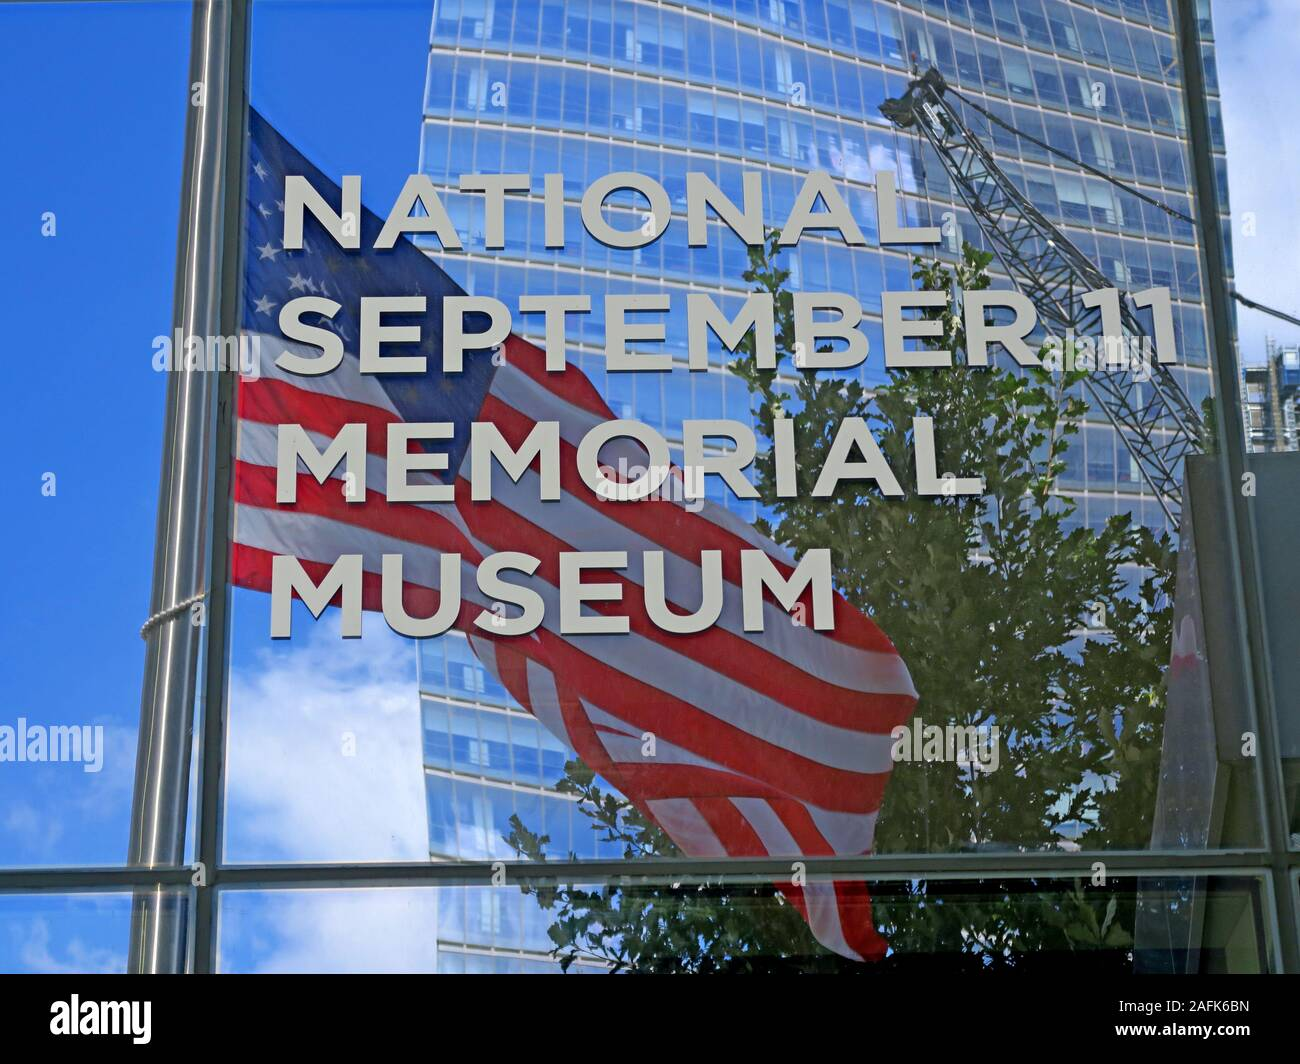 09/11 - 0911 - National September 11 Memorial Museum,One World Trade Center,Lower Manhattan,New York City, NY, USA with stars and stripes flag Stock Photo